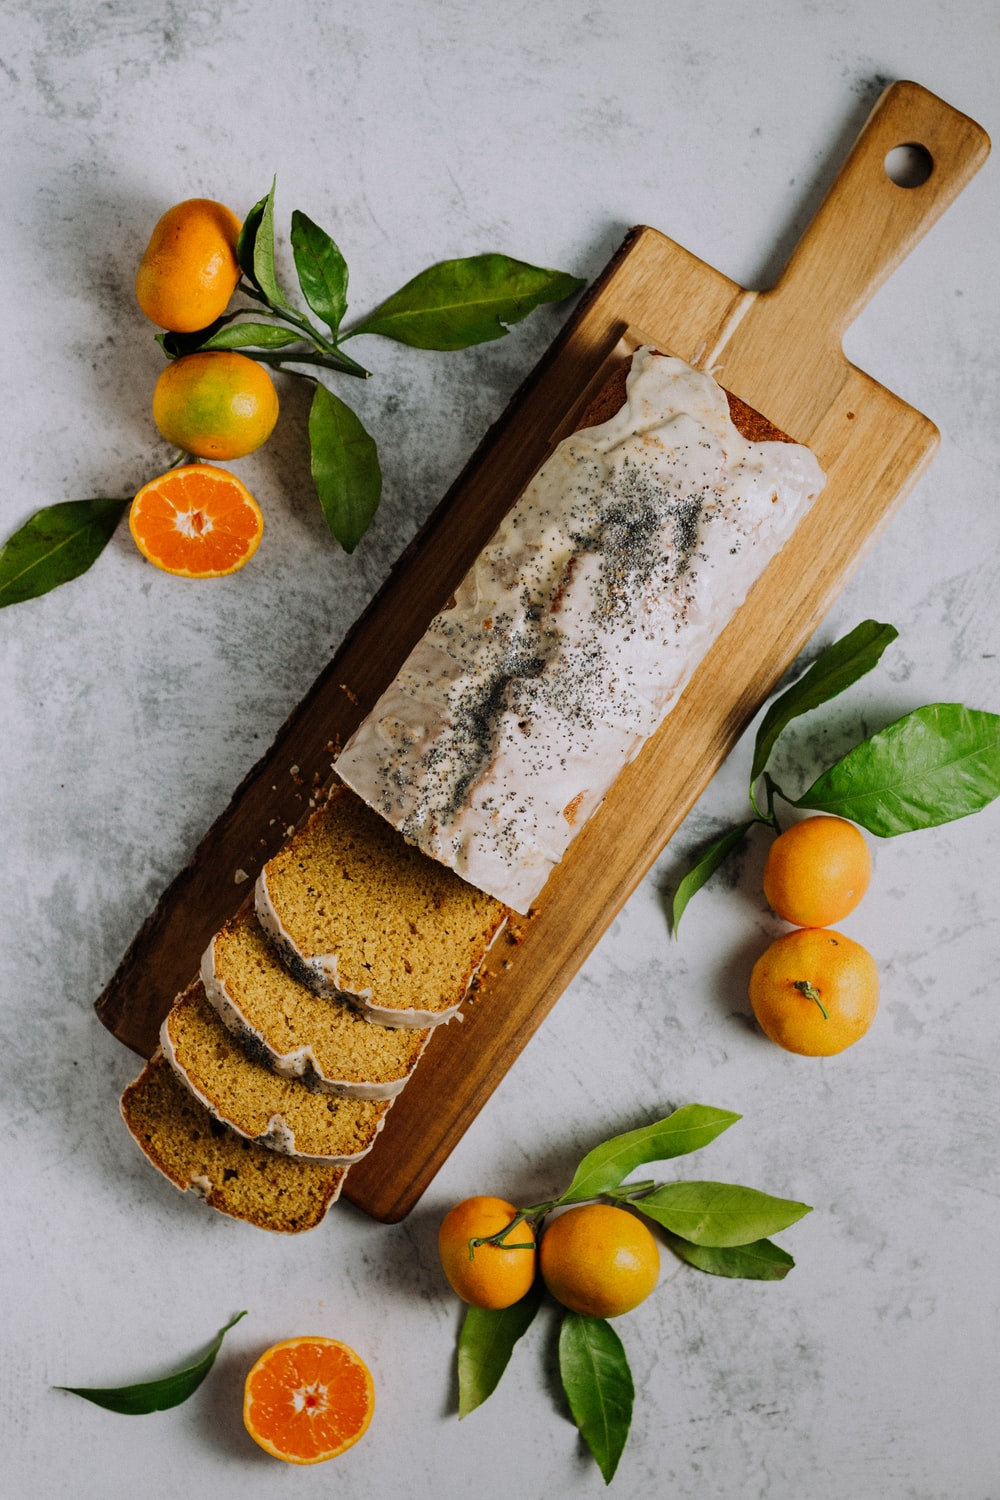 sliced of bread on brown wooden chopping board